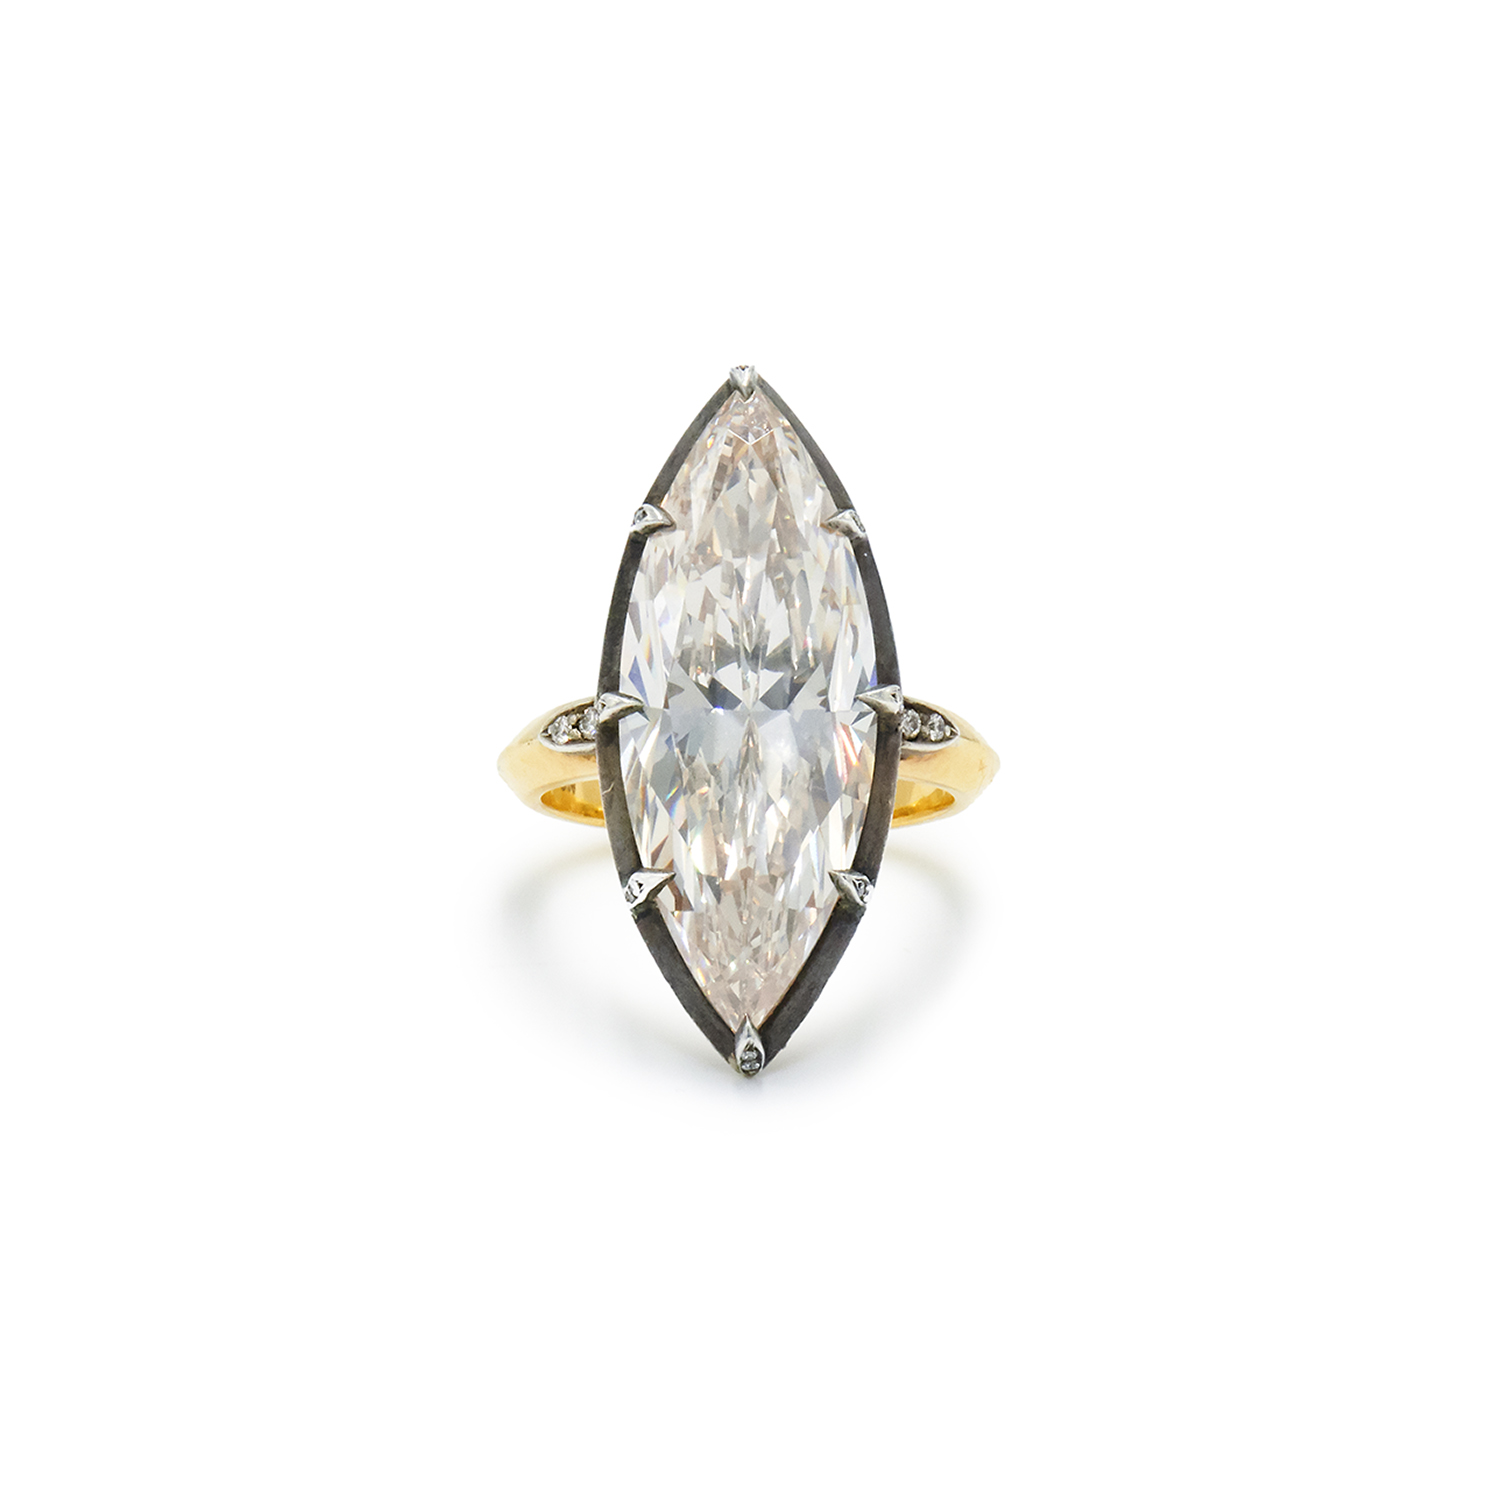 10.05ct Marquise Diamond Collet Ring Signed Fred Leighton Style R-39111-FL-0-0